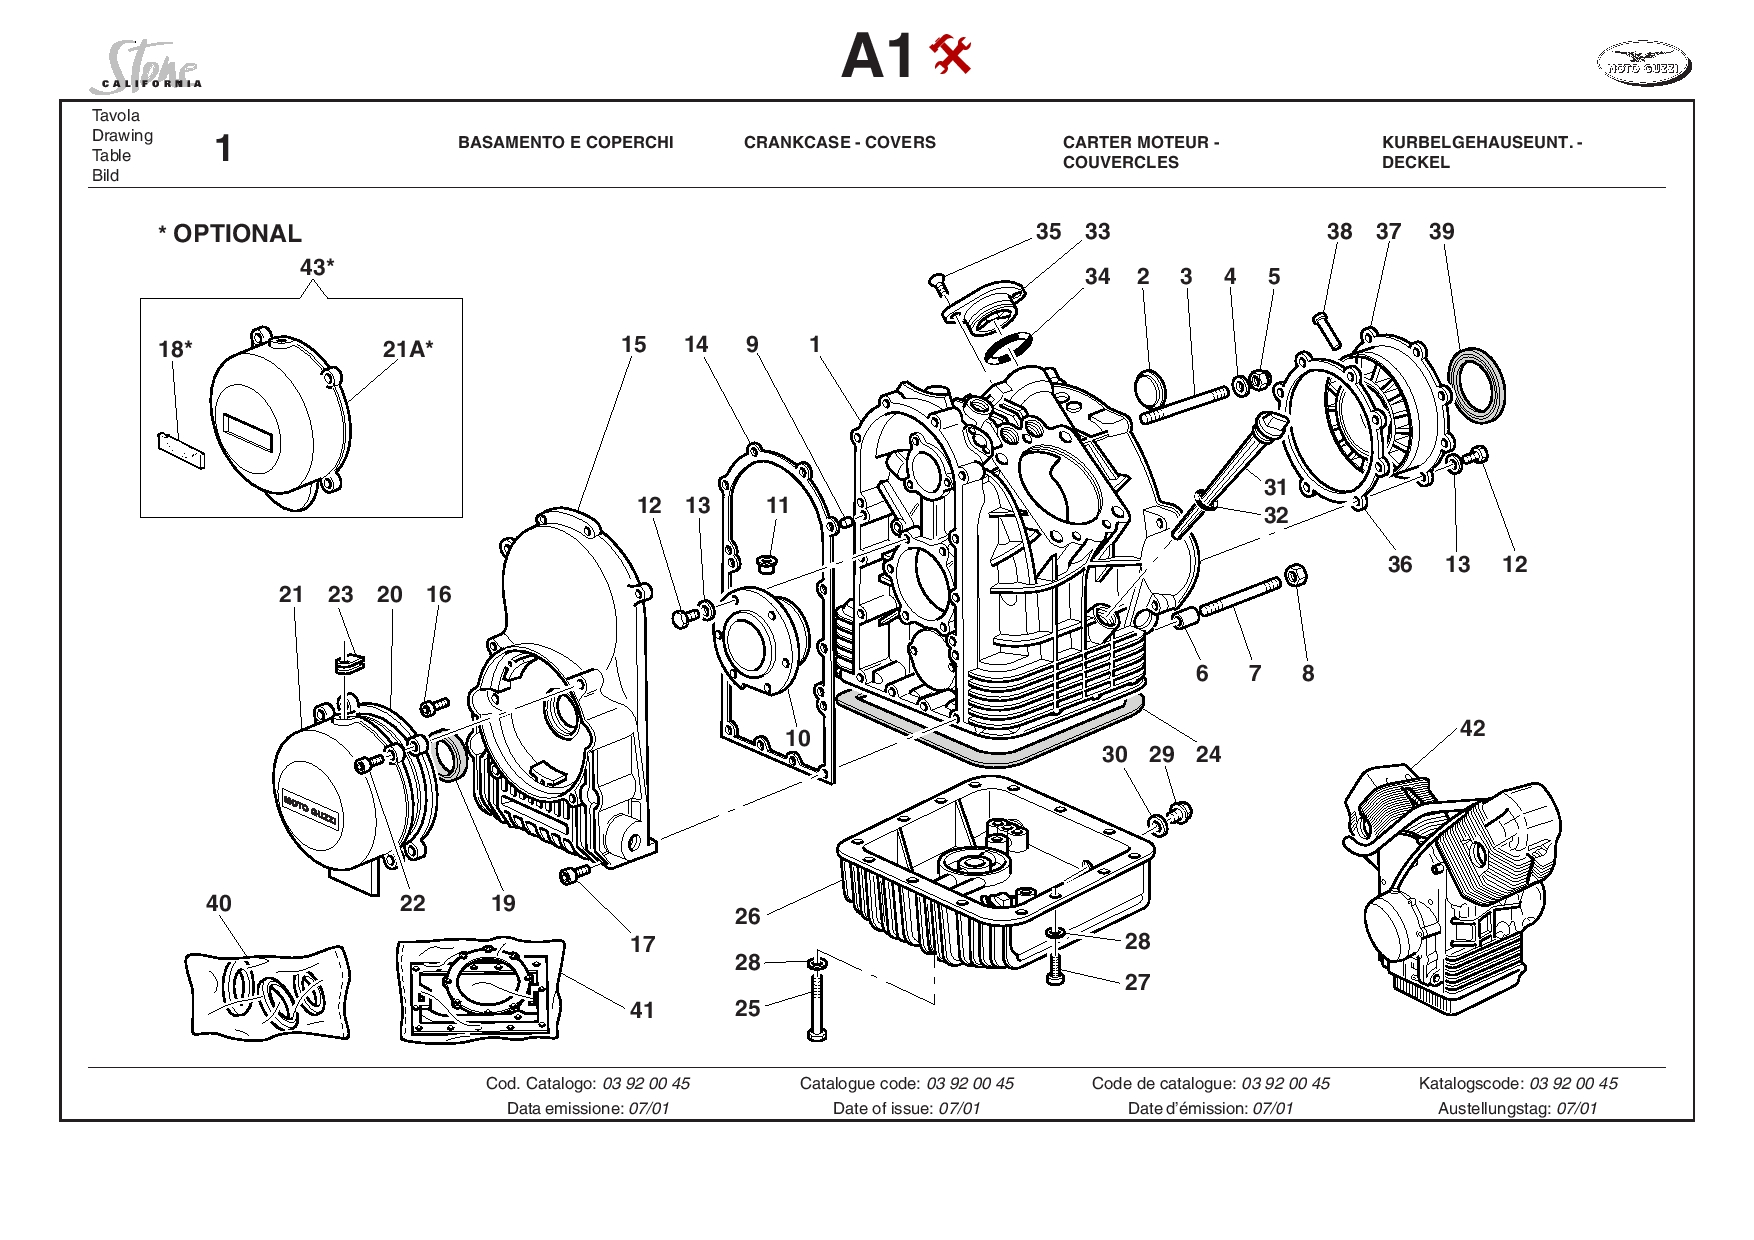 Moto Guzzi California Stone 2001 Parts List PDF Download